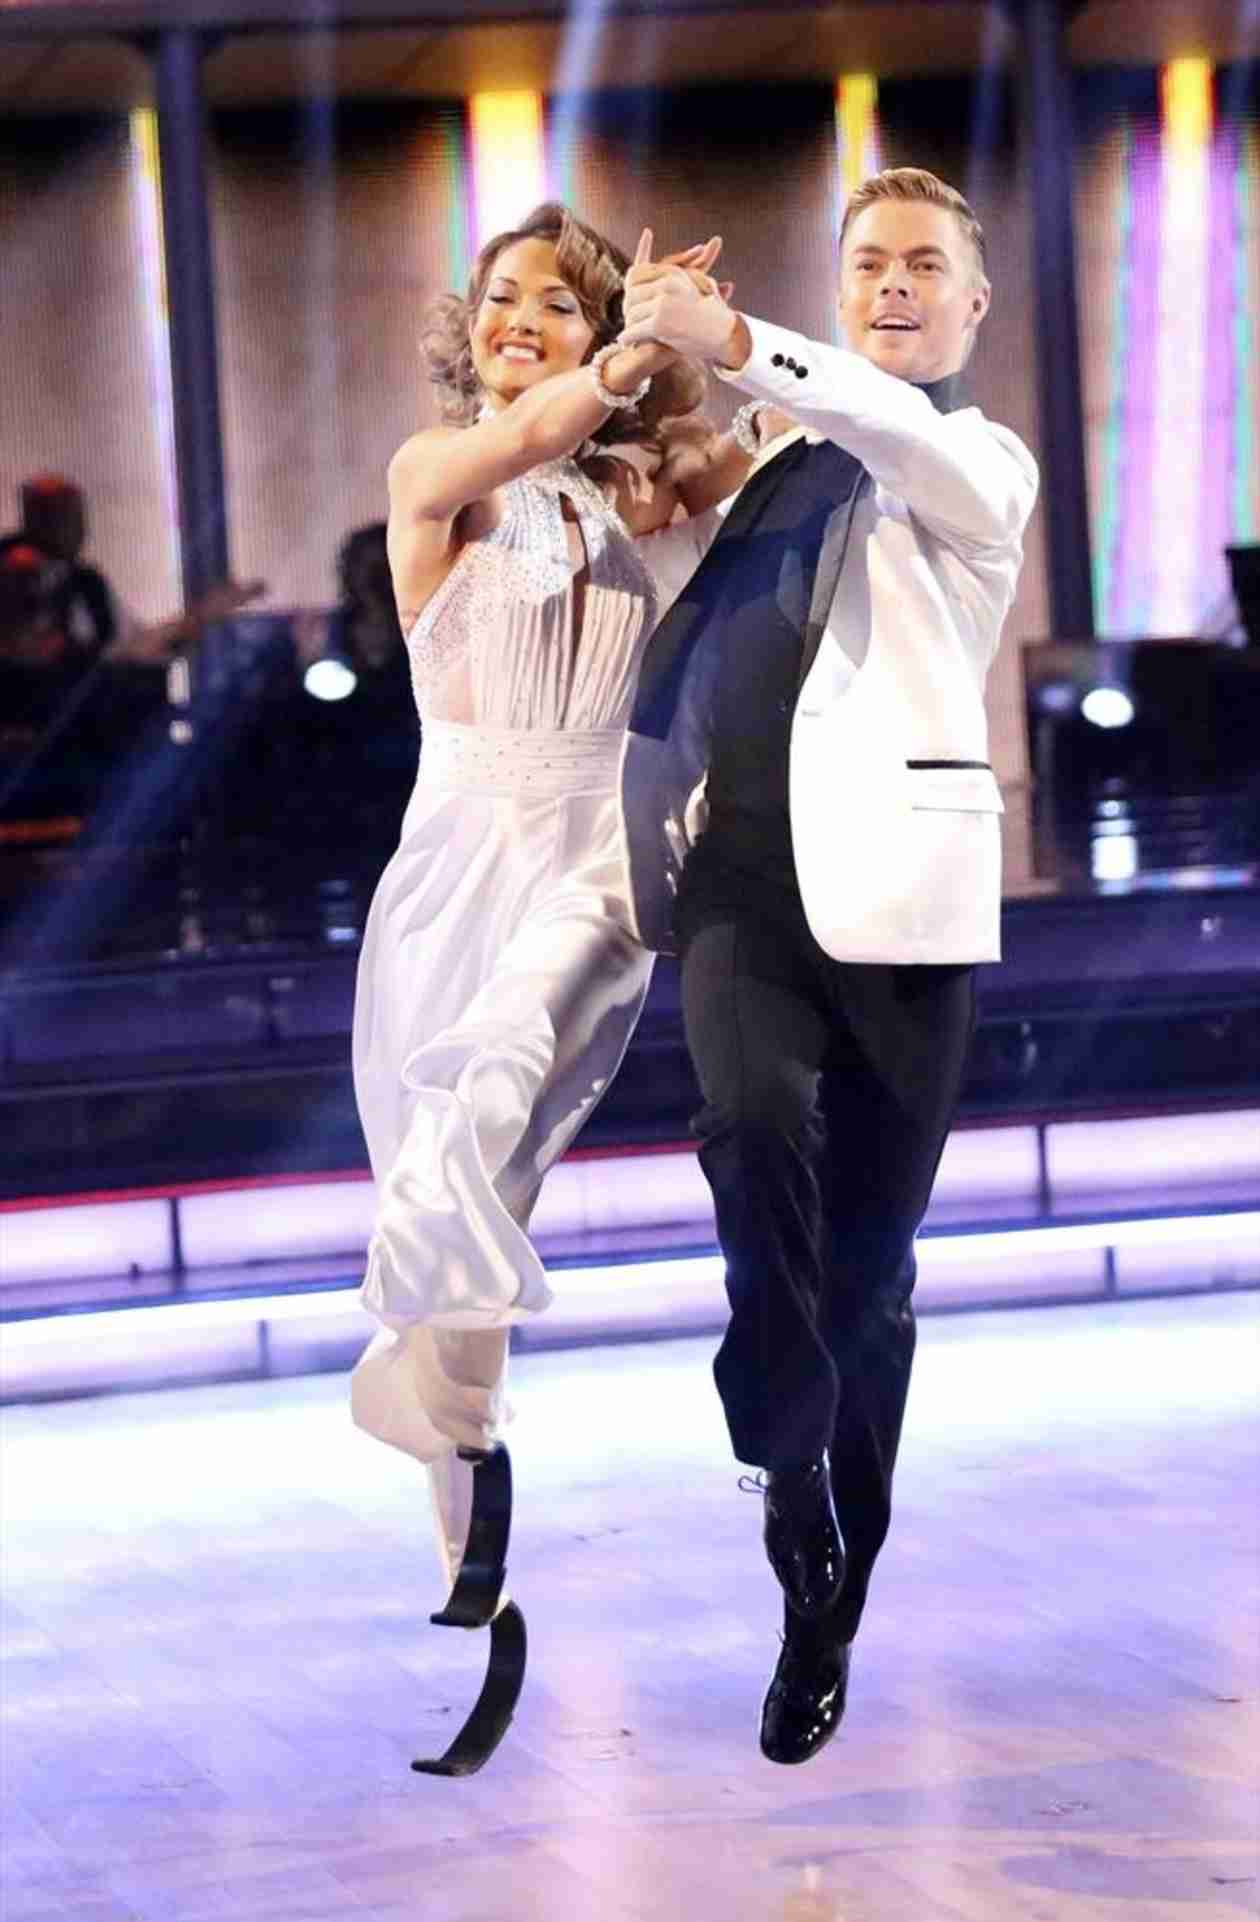 Dancing With the Stars Season 18: Amy Purdy and Derek Hough's 5 Best Dances (So Far)